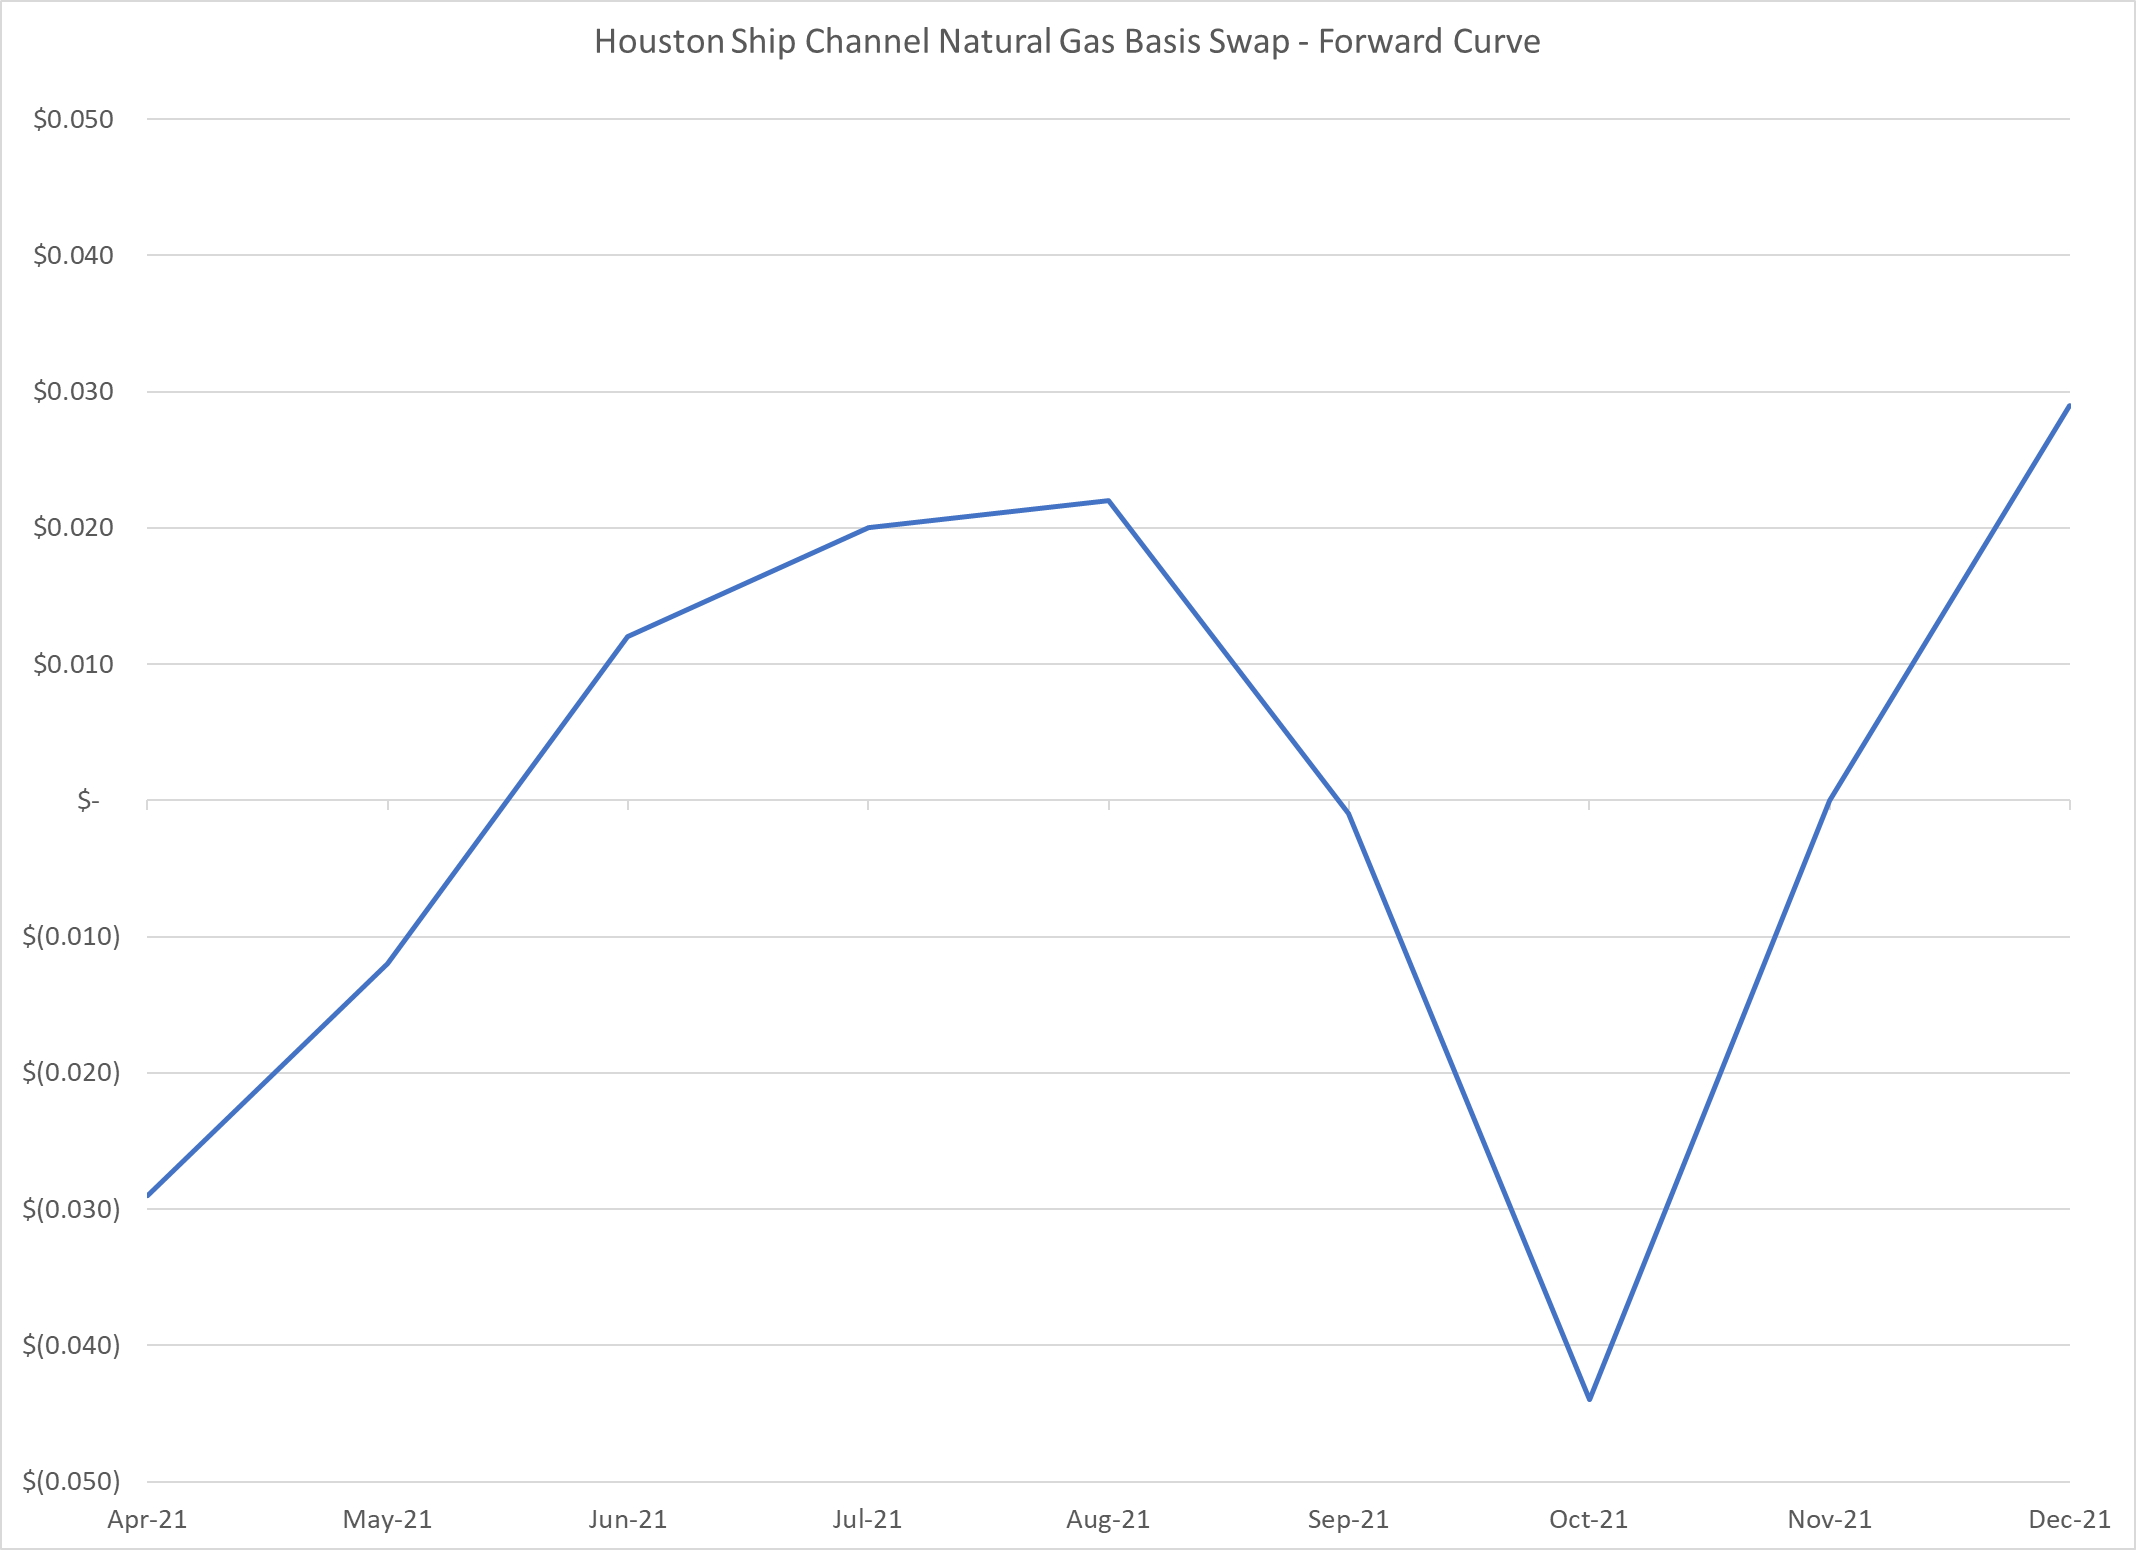 Houston-Ship-Channel-natural-gas-basis-forward-curve-26-February-2021